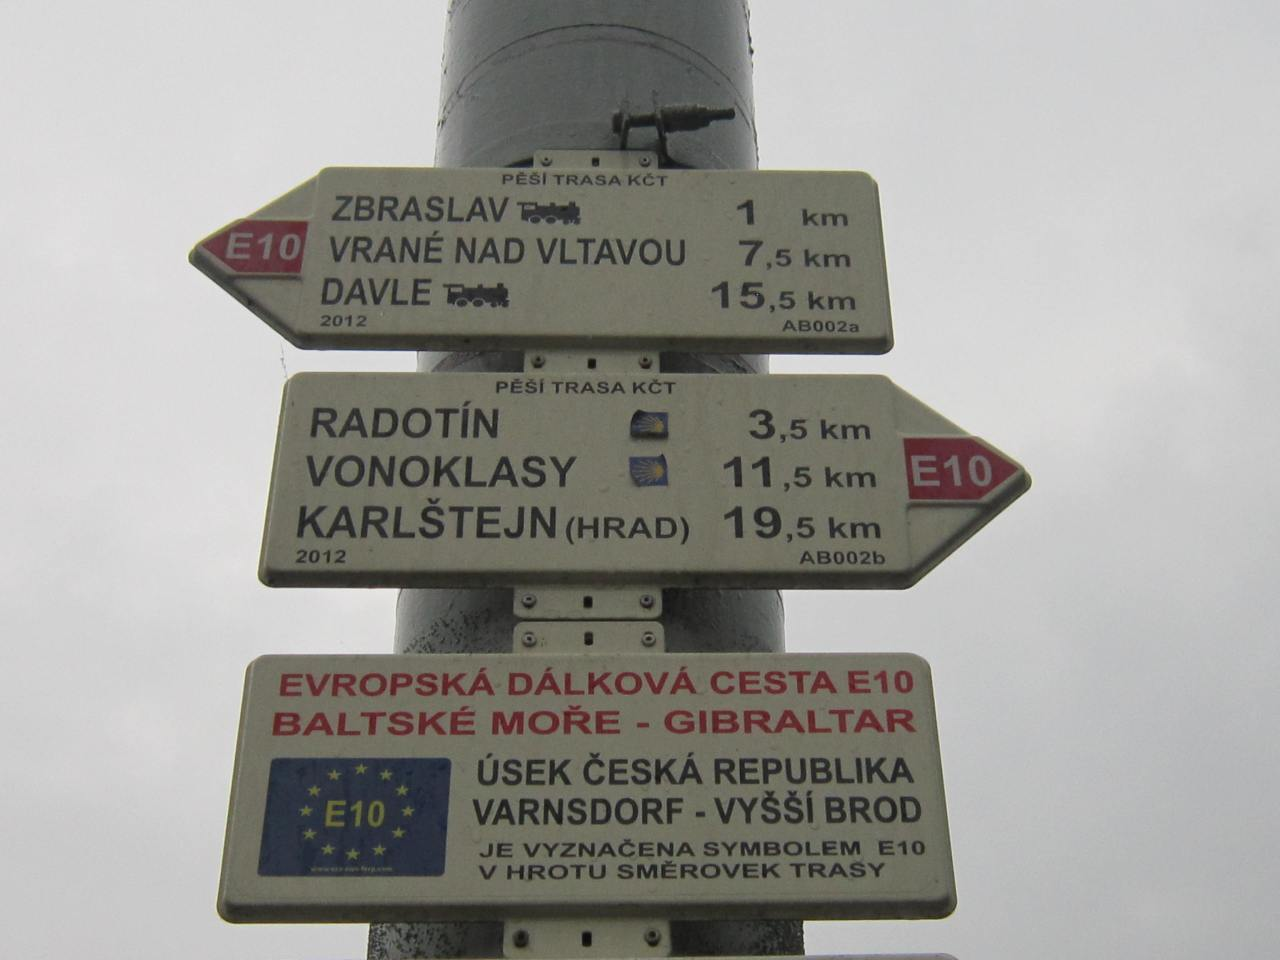 Camino de Santiago way marking signs in the Czech Republic